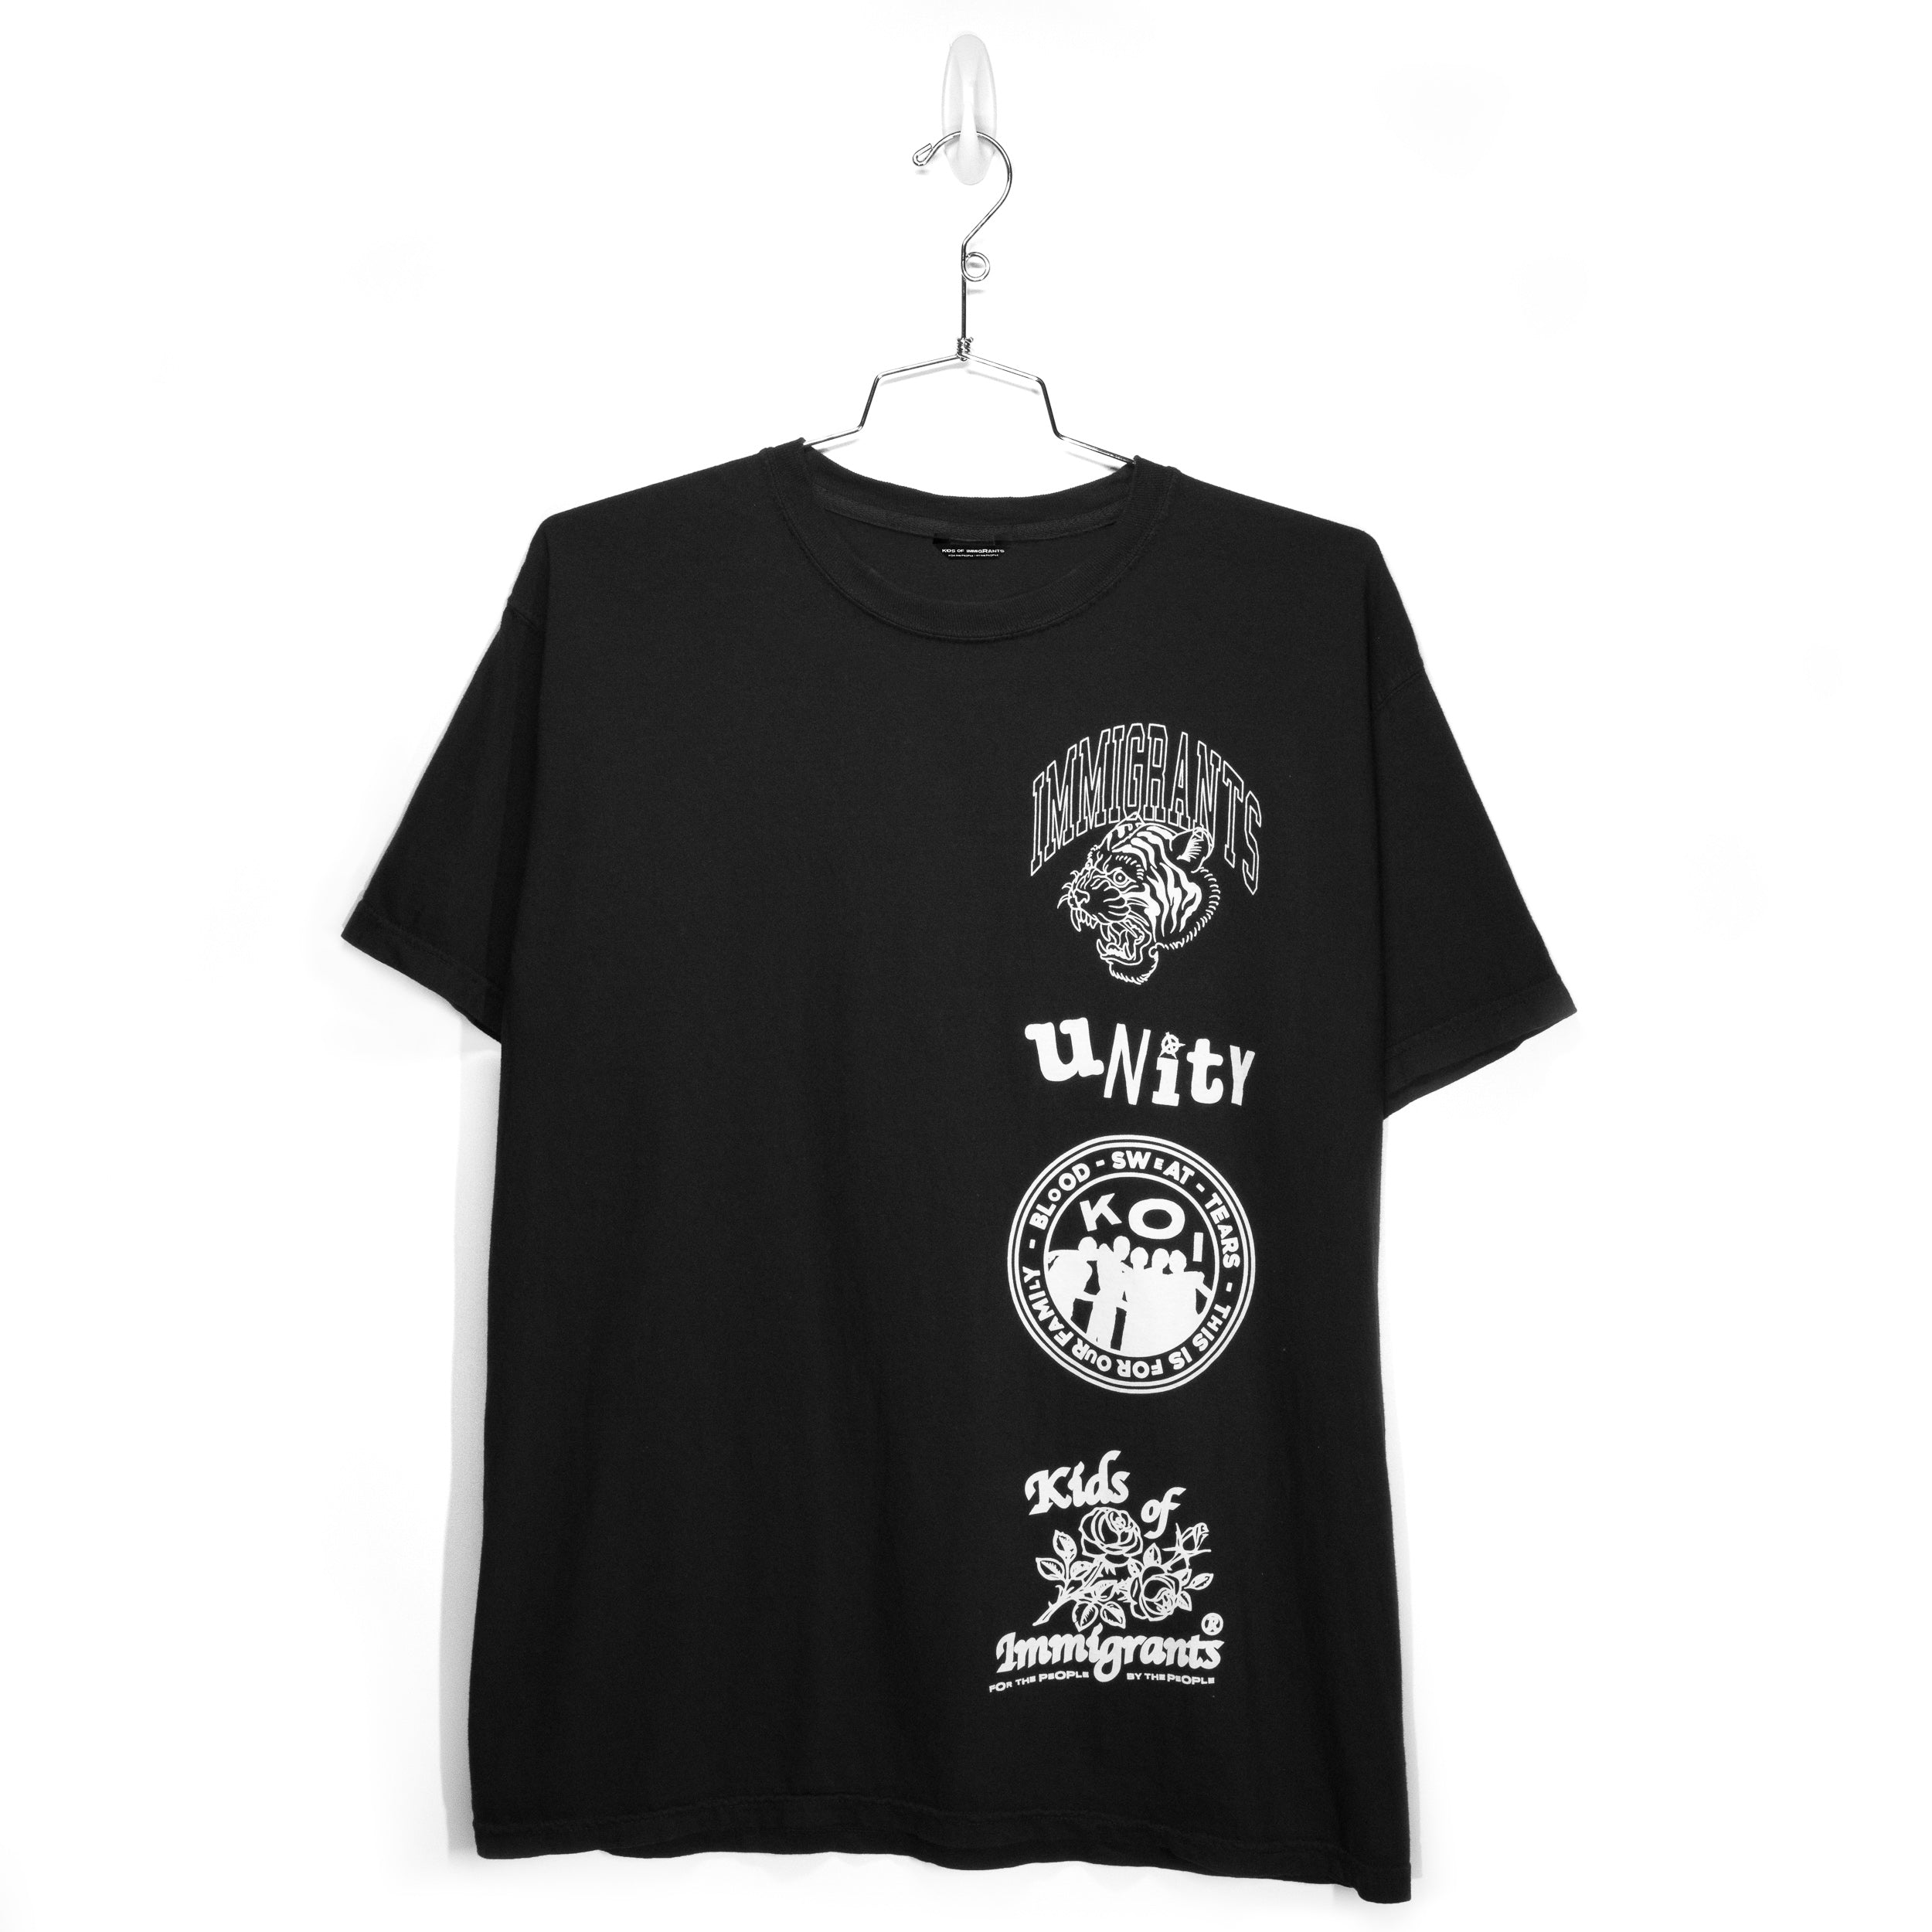 IMMIGRANTS 2.0 S/S T-SHIRT - BLACK